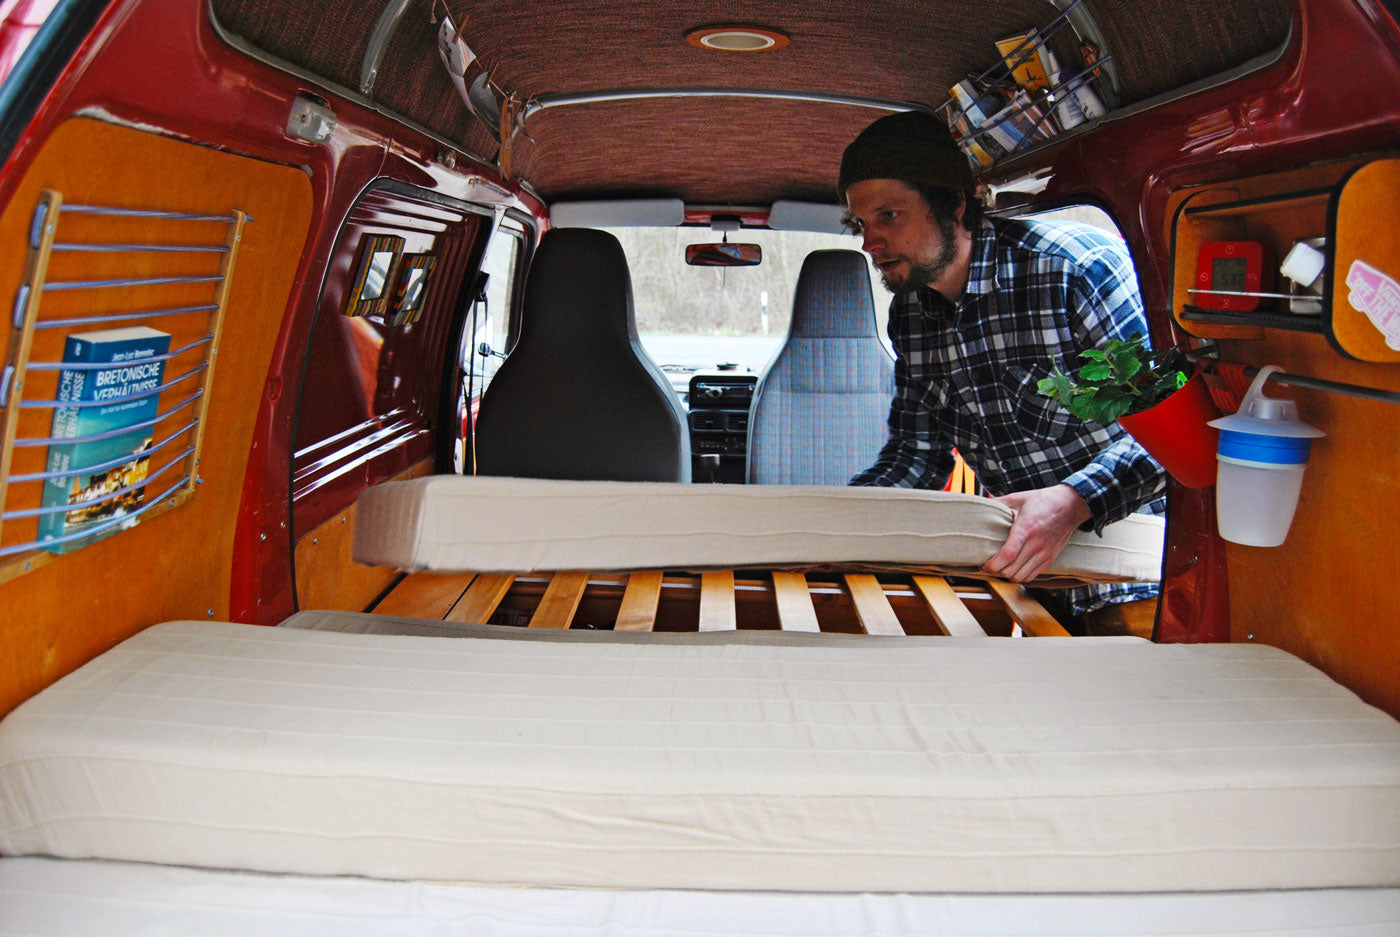 The inside of this Daihatsu Hijet measures only 3 x 1.4 x 1.8 metres. Still there is room for a bed, table, and clothing storage. (Photo: Daniel Kalinowski)